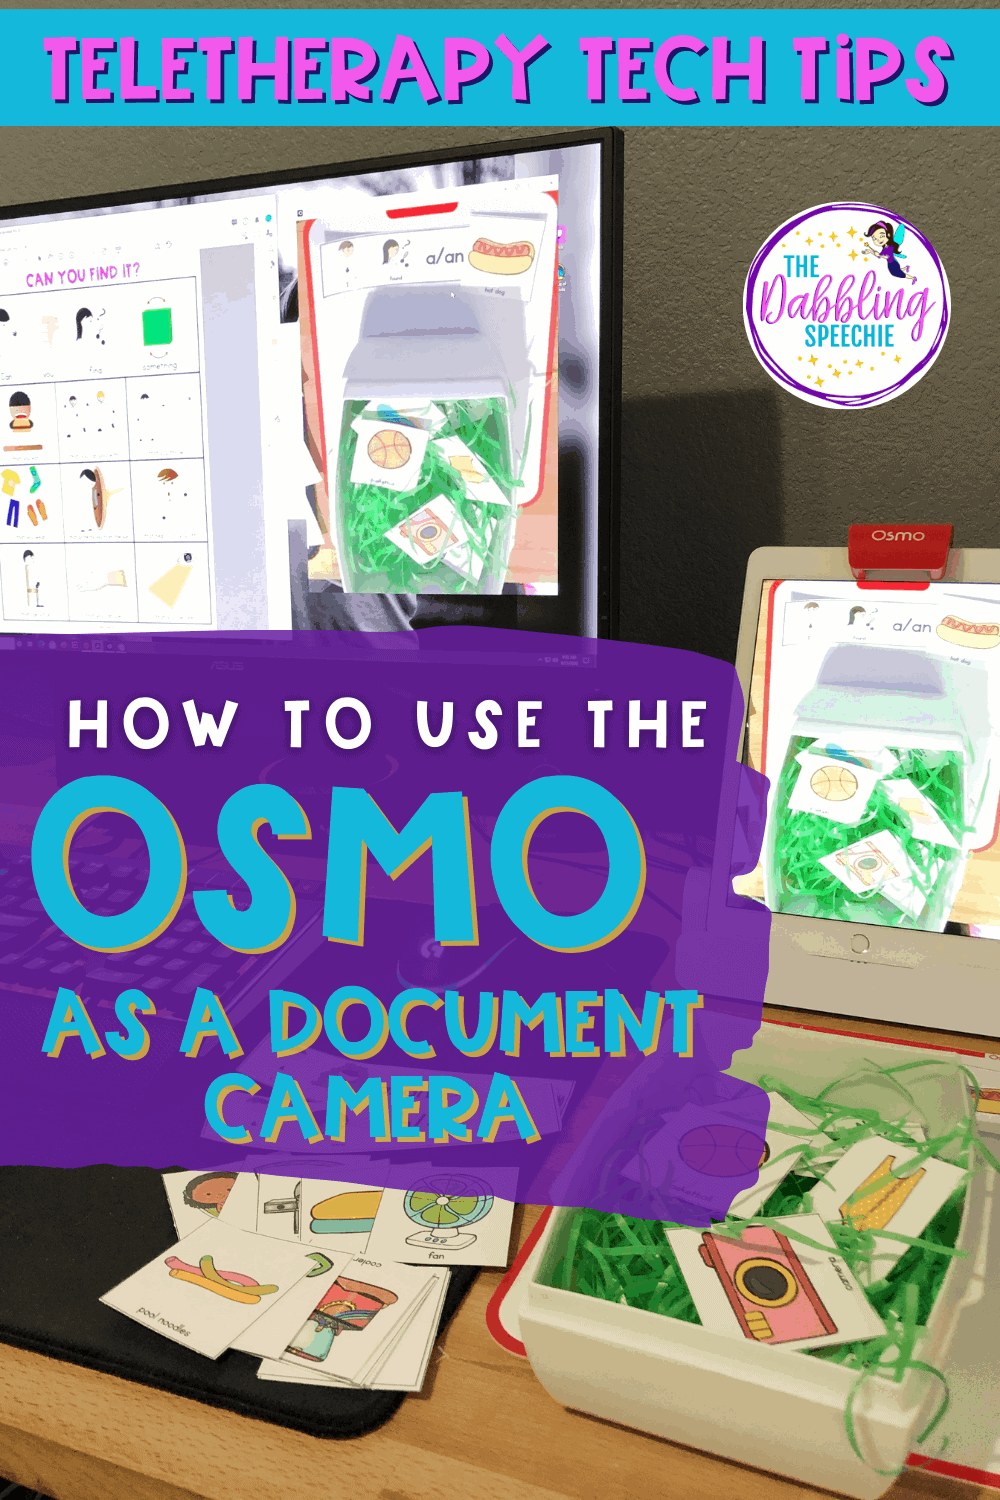 OSMO speech therapy ideas for using it as a document camera